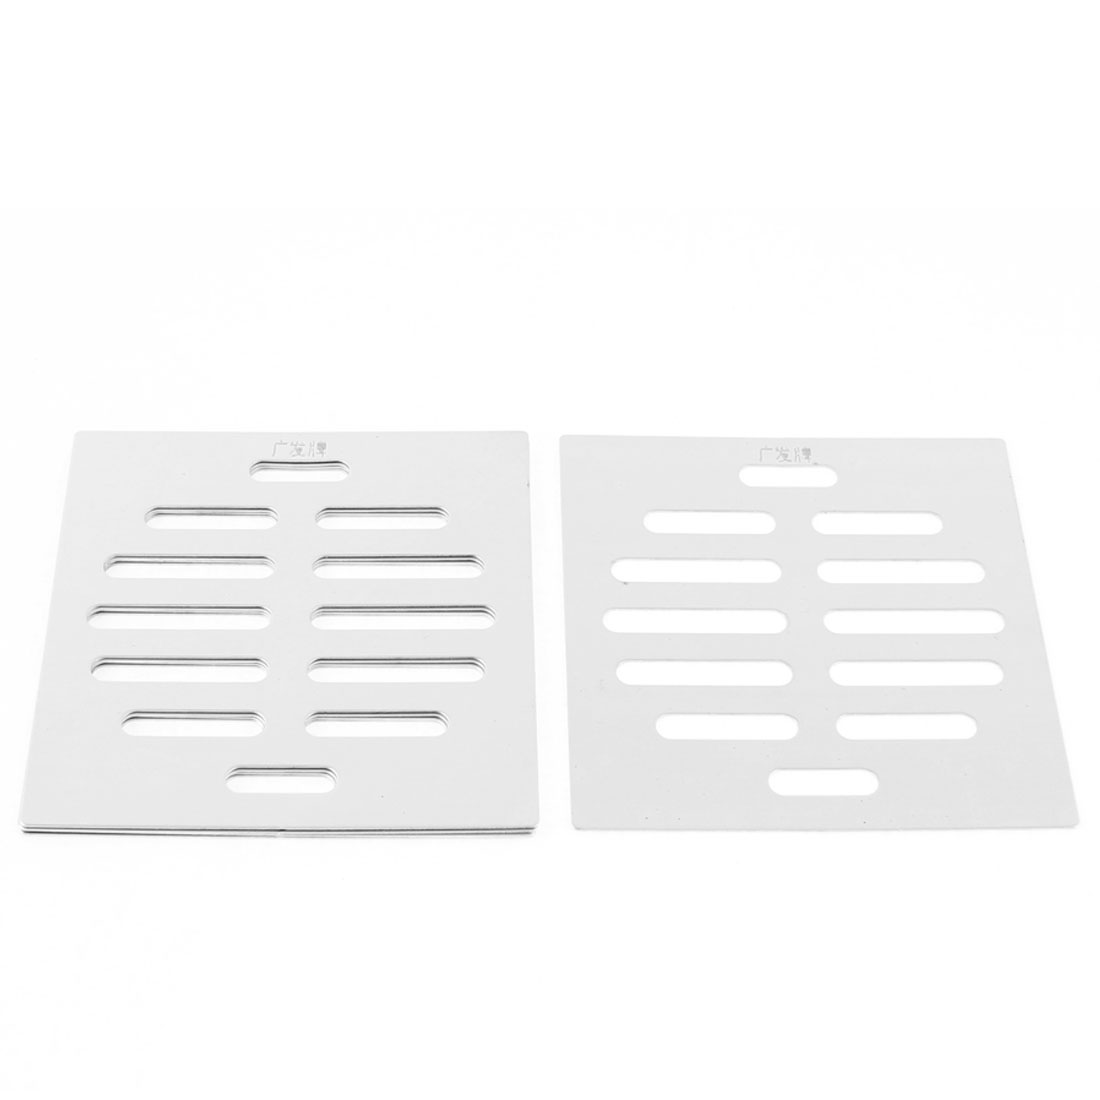 "Stainless Steel Kitchen Bathroom Square Floor Drain Cover 4"" 10cm 5pcs"